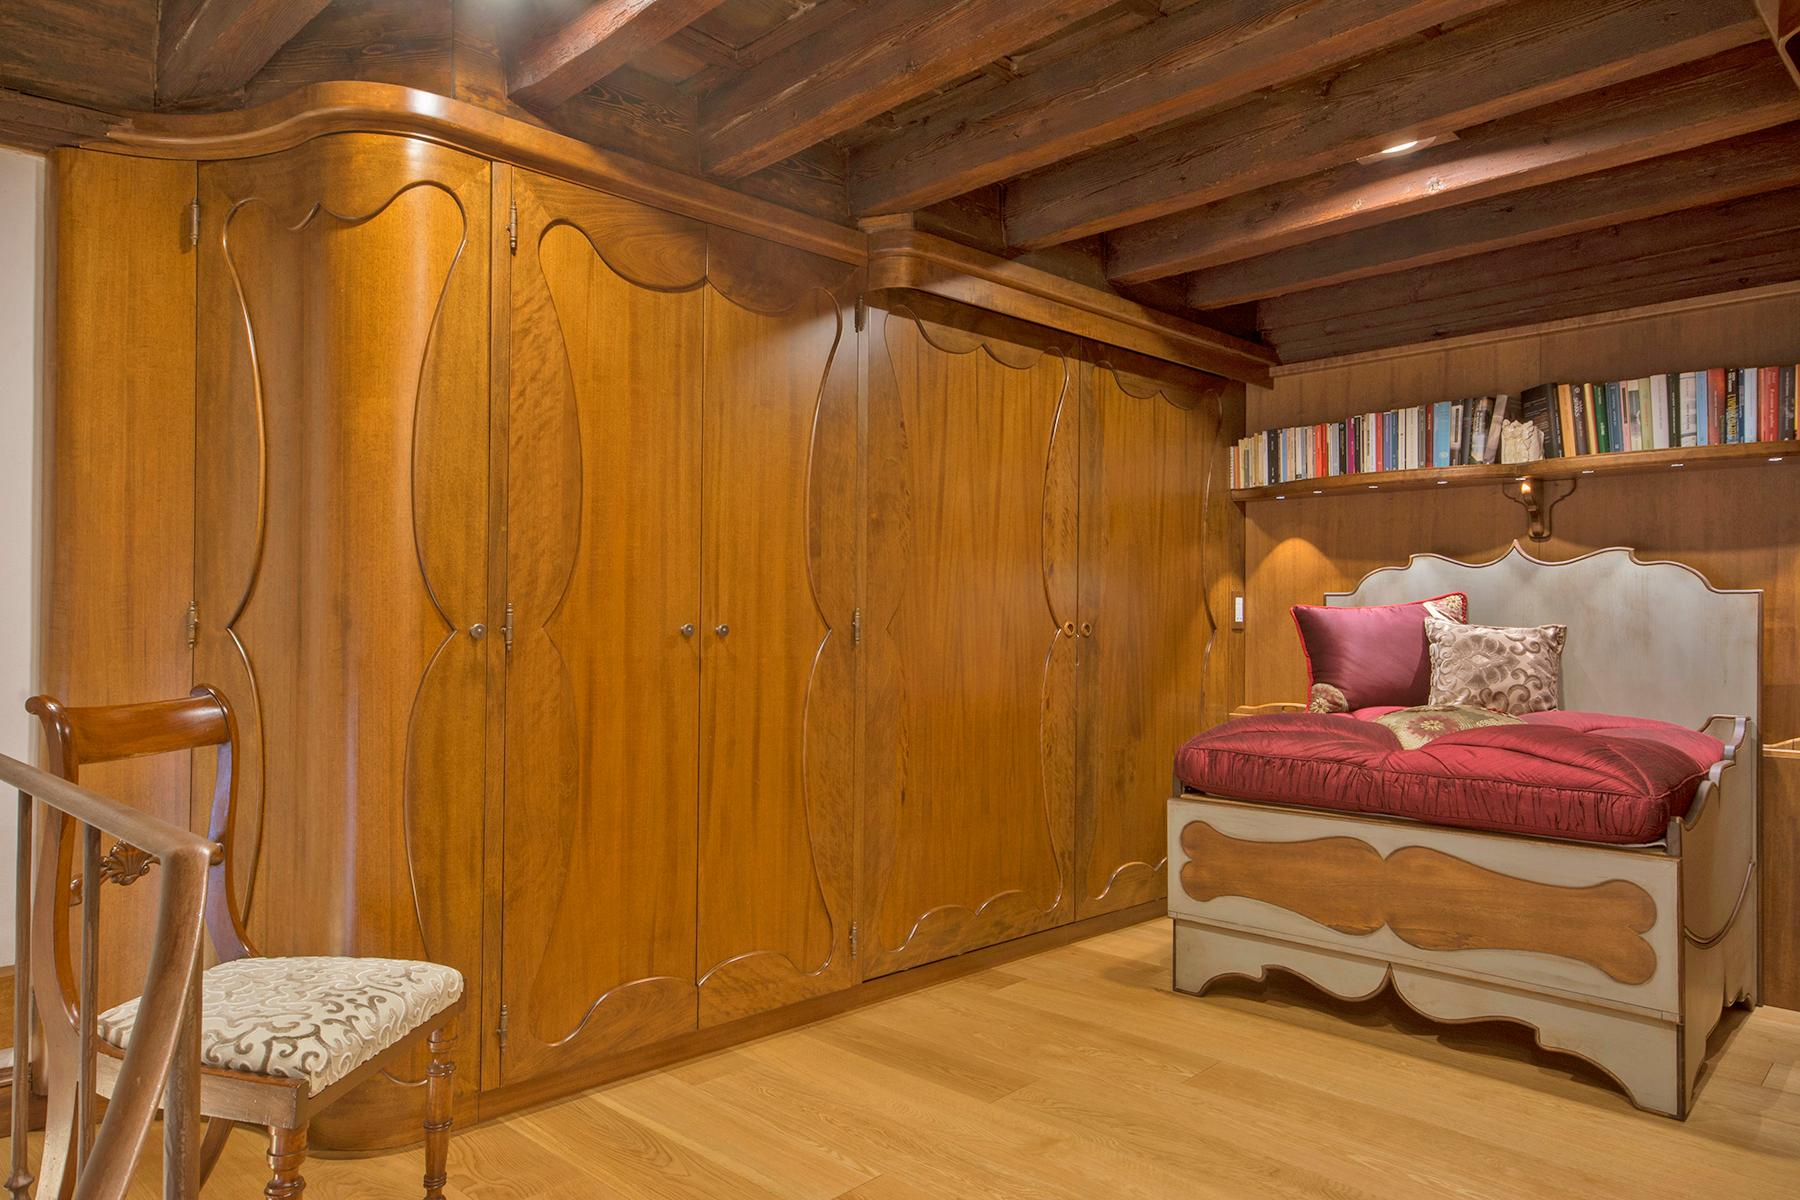 Lovely apartment in the heart of Lucca - 13